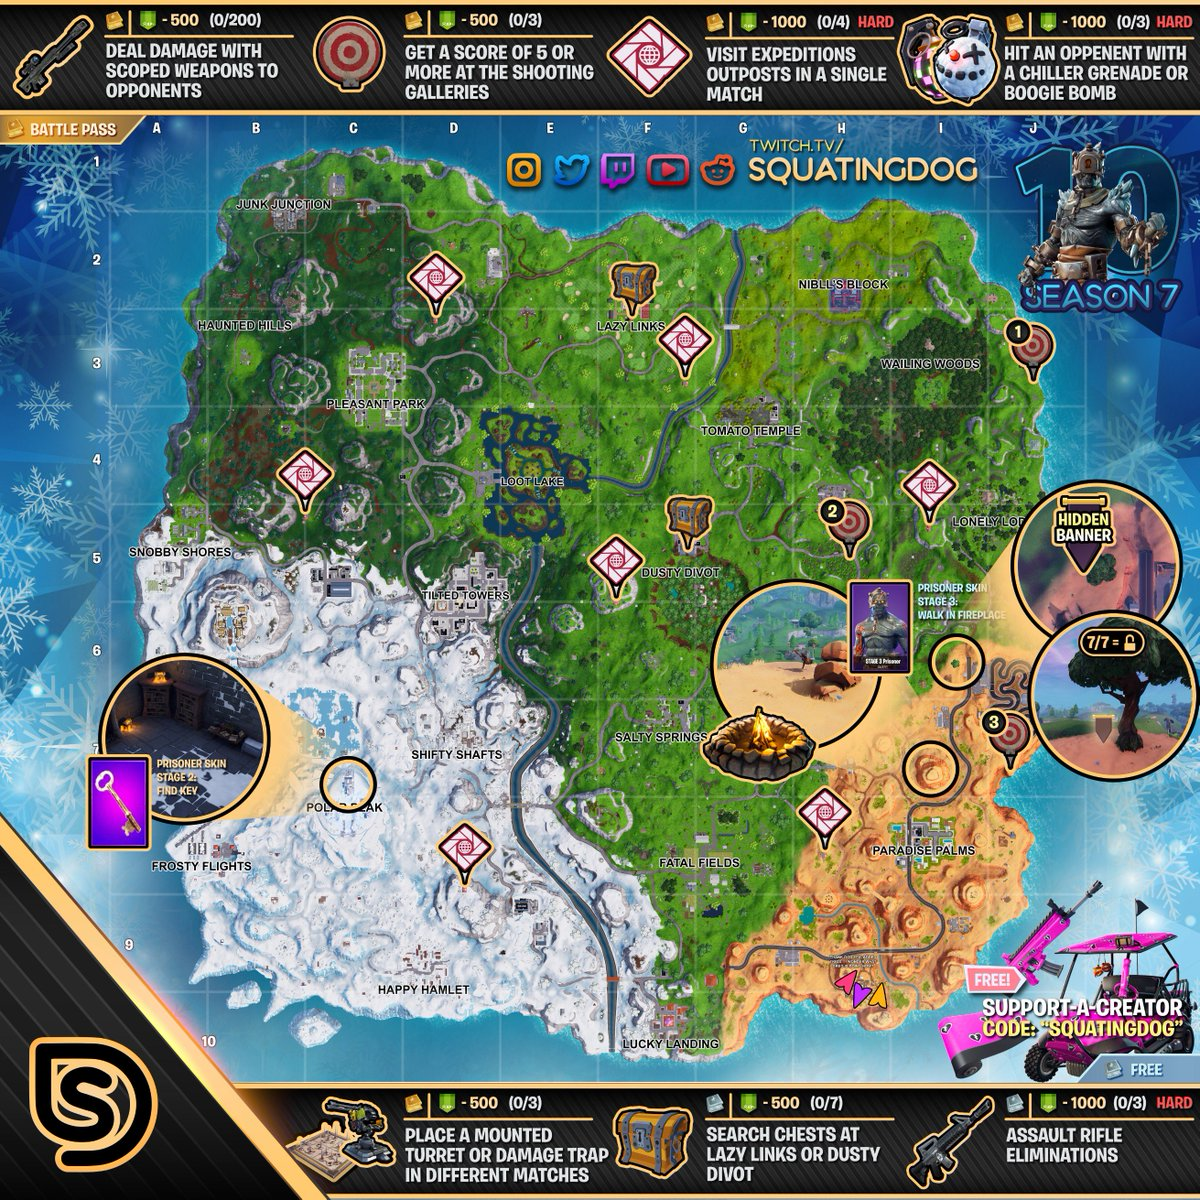 Squatingdog On Twitter Retweet Tag A Friend Who Needs The Season 7 Week 10 Cheat Sheet For Fortnite Battle Royale S Battlepass By Thesquatingdog If You Like This Content Use Squatingdog As Your Support